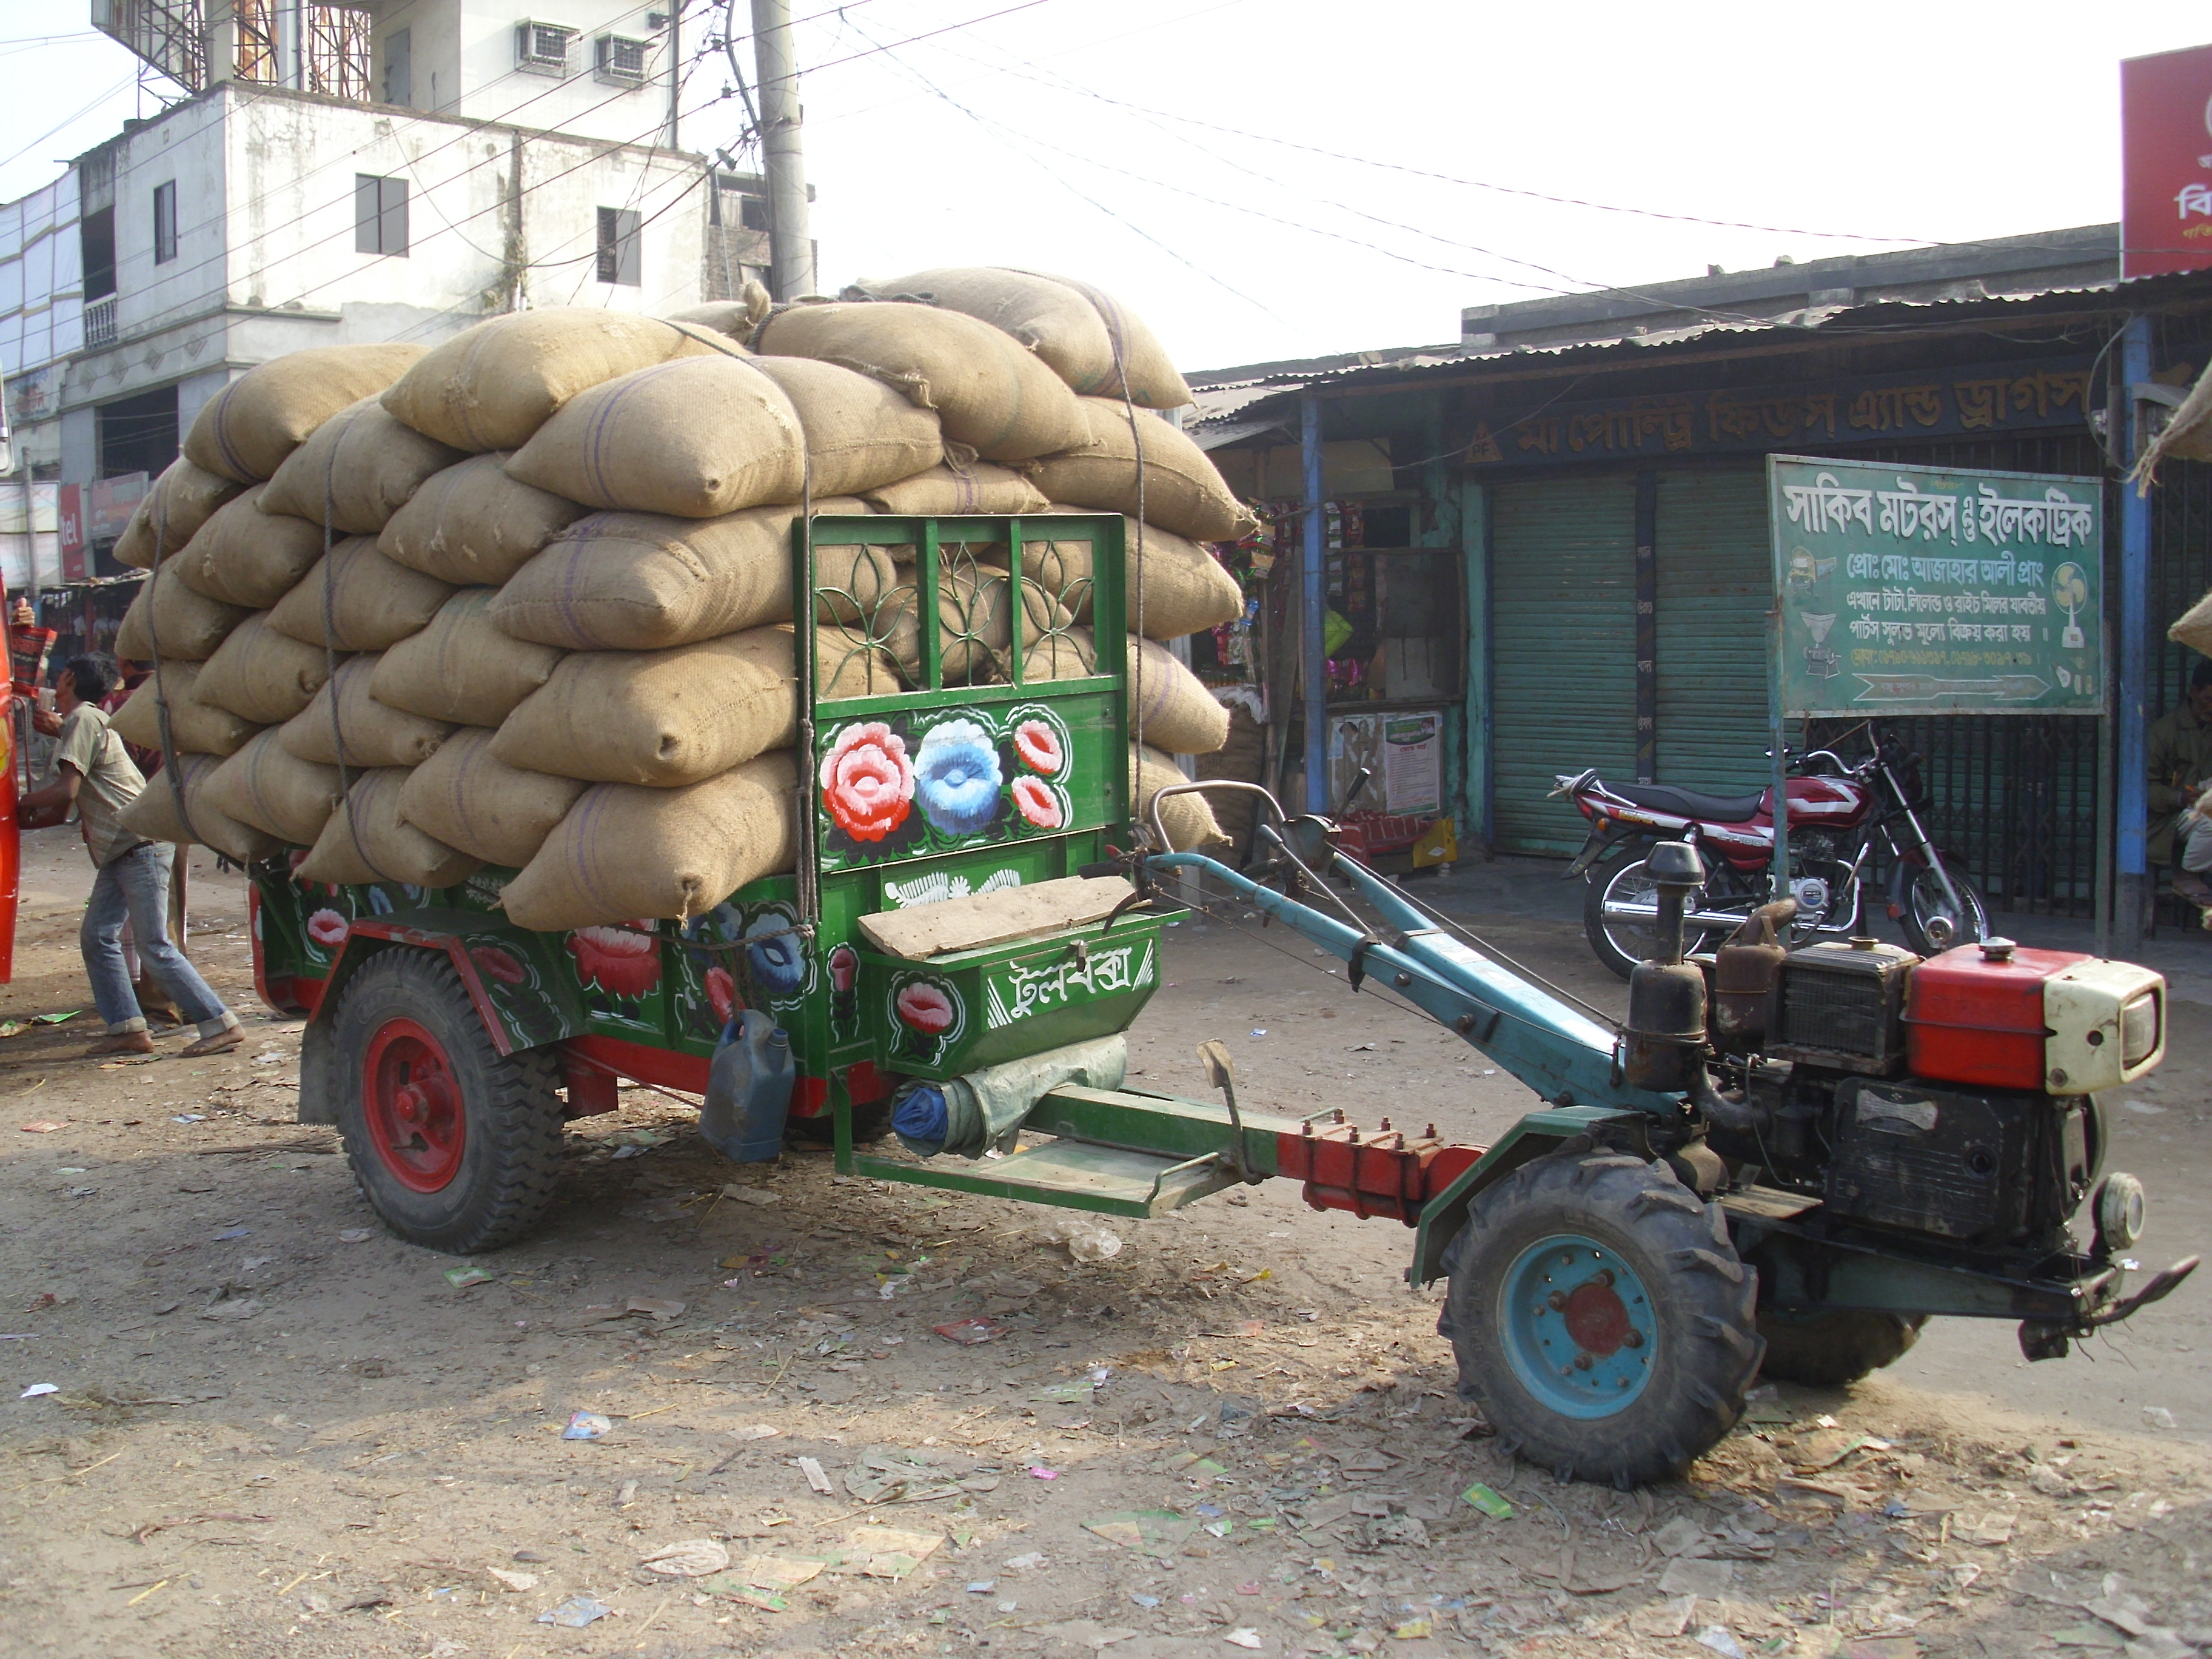 Antique Two Wheel Tractor : File dec bangladesh g wikimedia commons